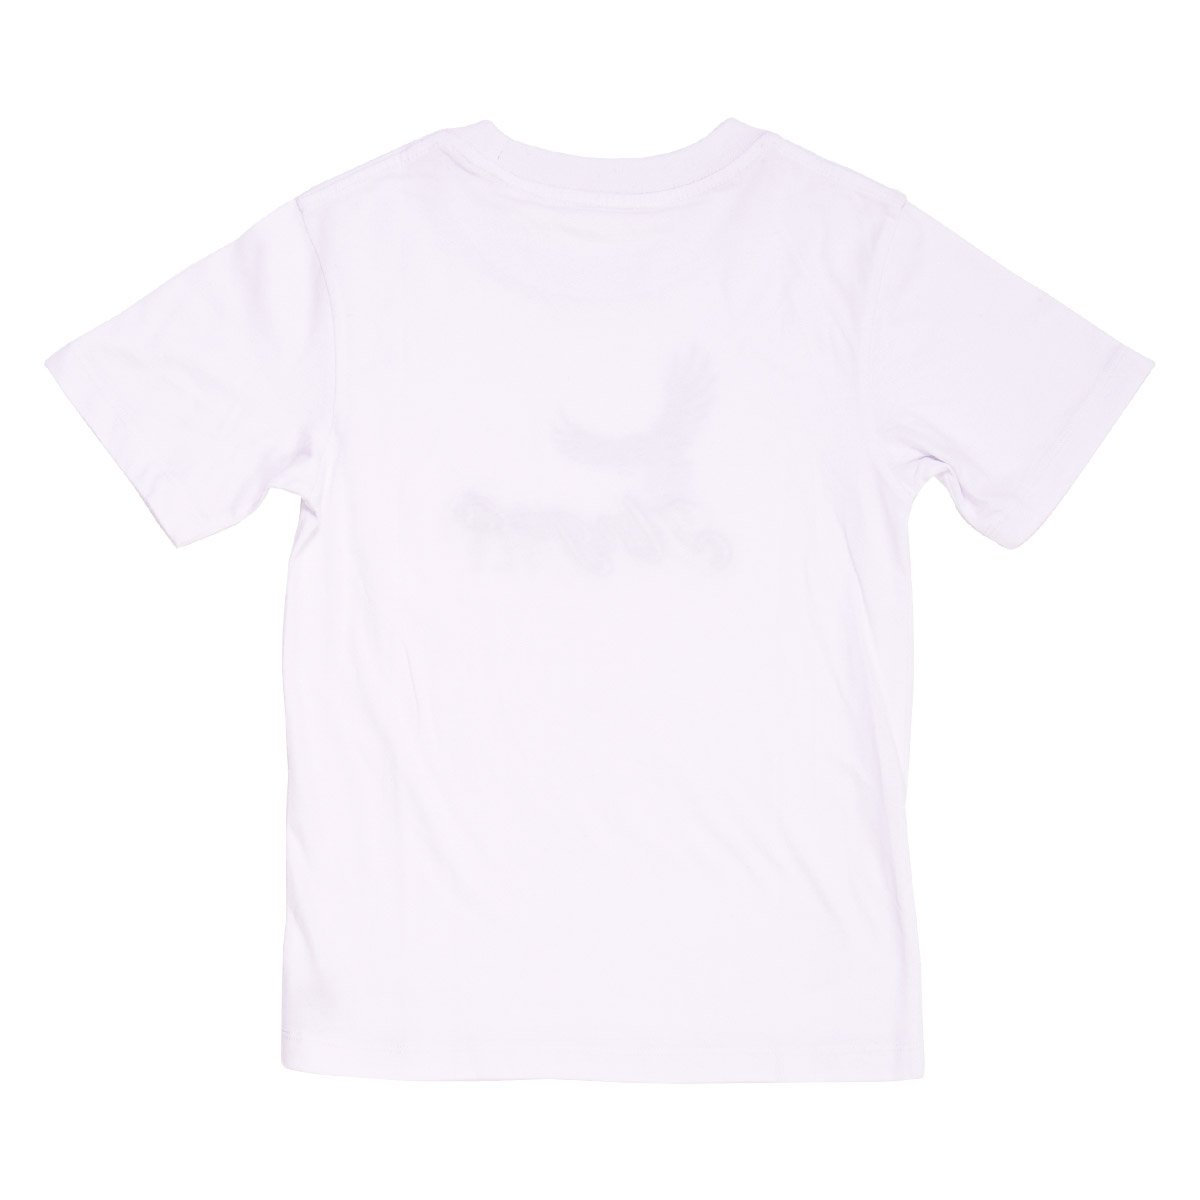 Angels Luxury Kidswear Round Neck Graphic T-Shirt - Angels Fly, White